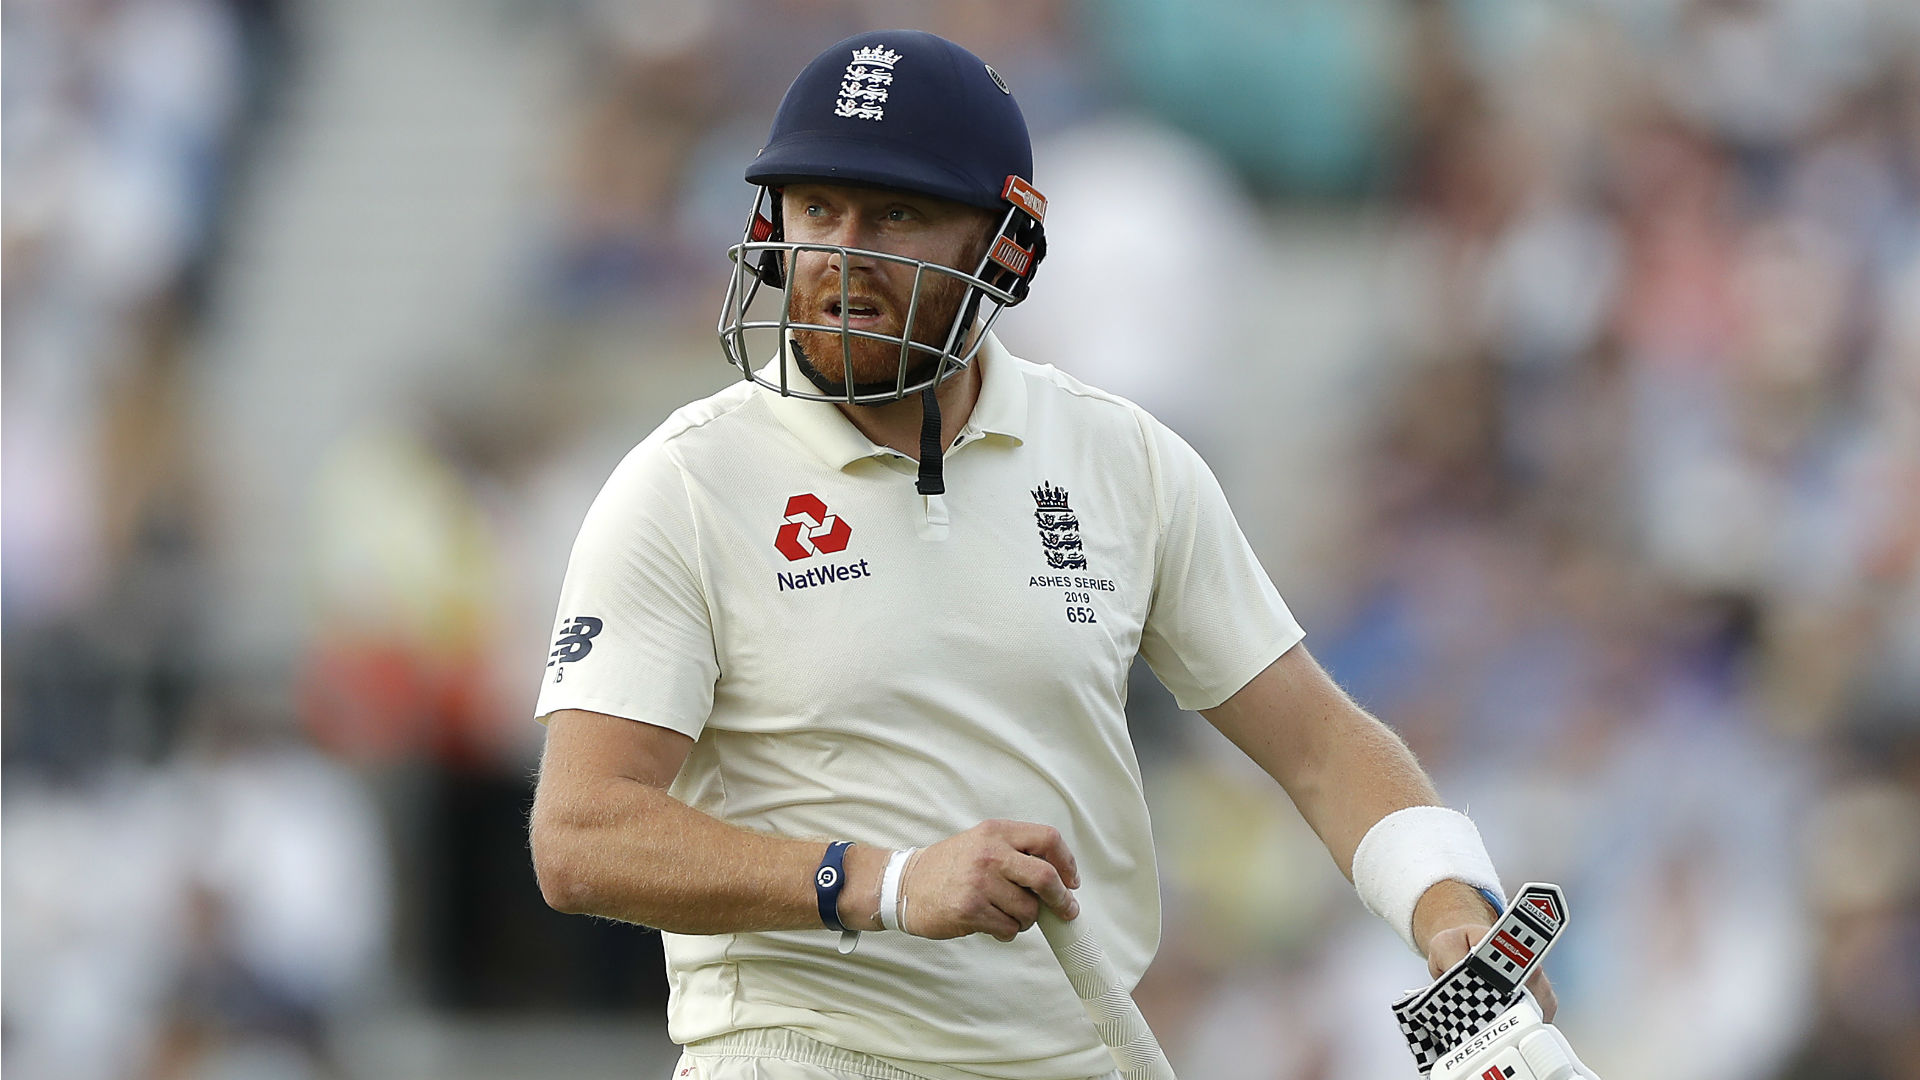 Jonny Bairstow will recover from his poor Test form if he has to replace Joe Denly during England's tour of New Zealand, says Alastair Cook.